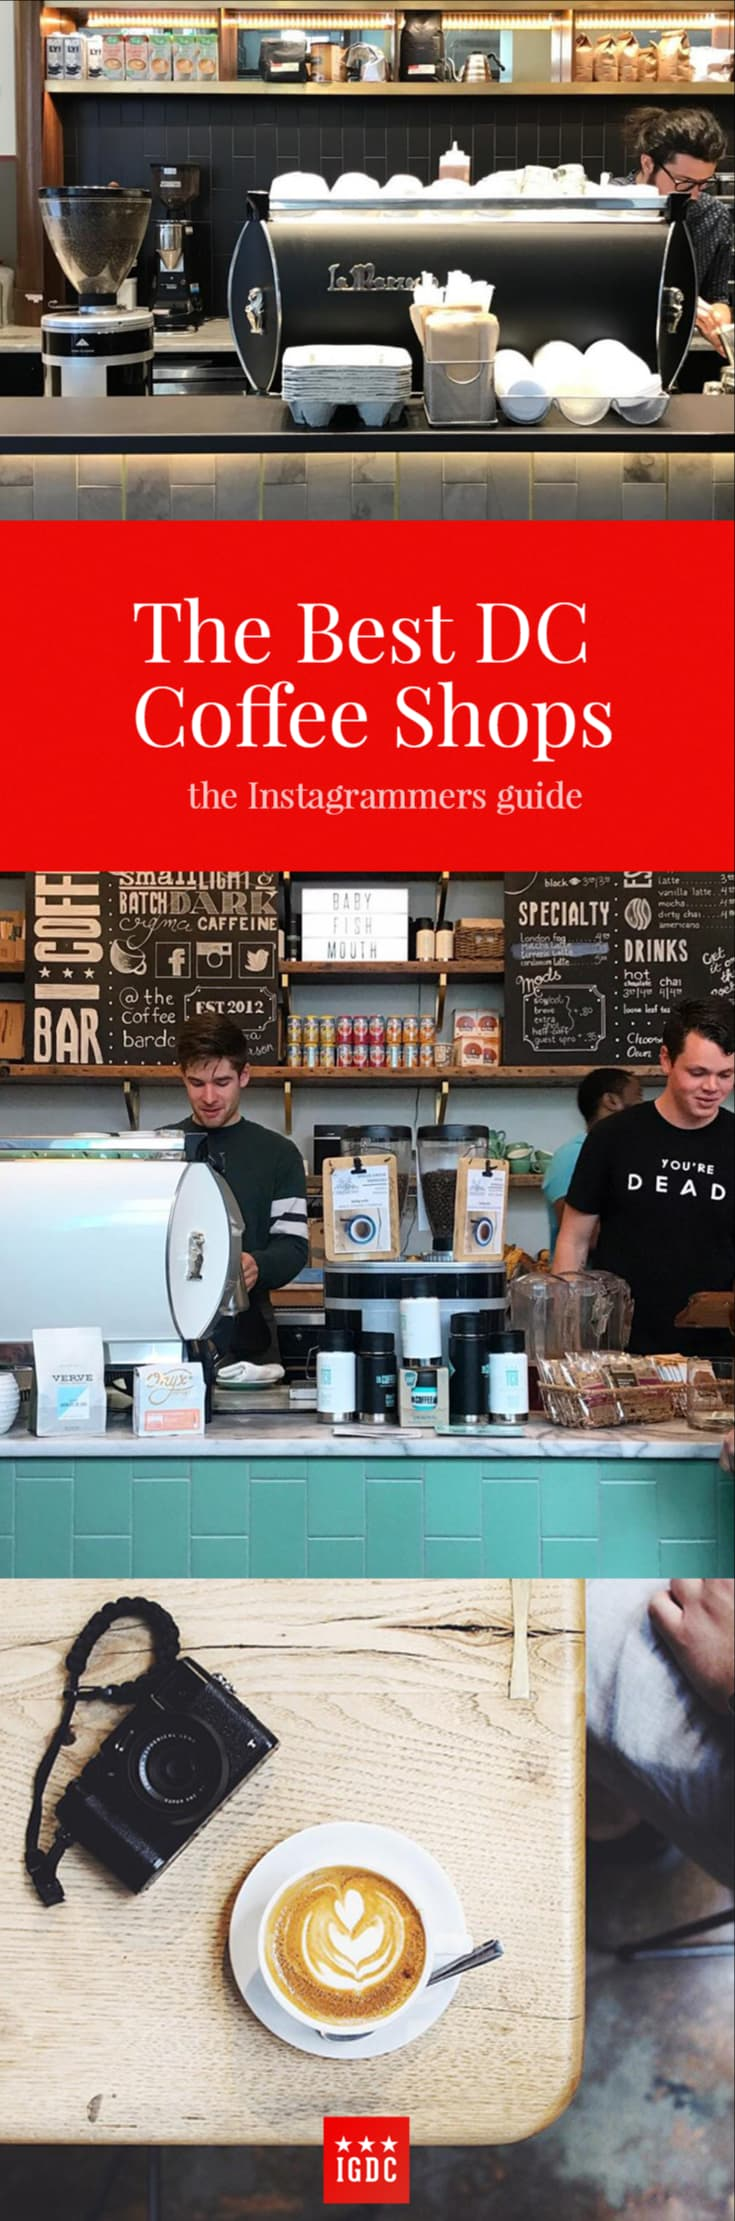 The Best Coffee Shops in Washington DC for Instagrammers // IGDC